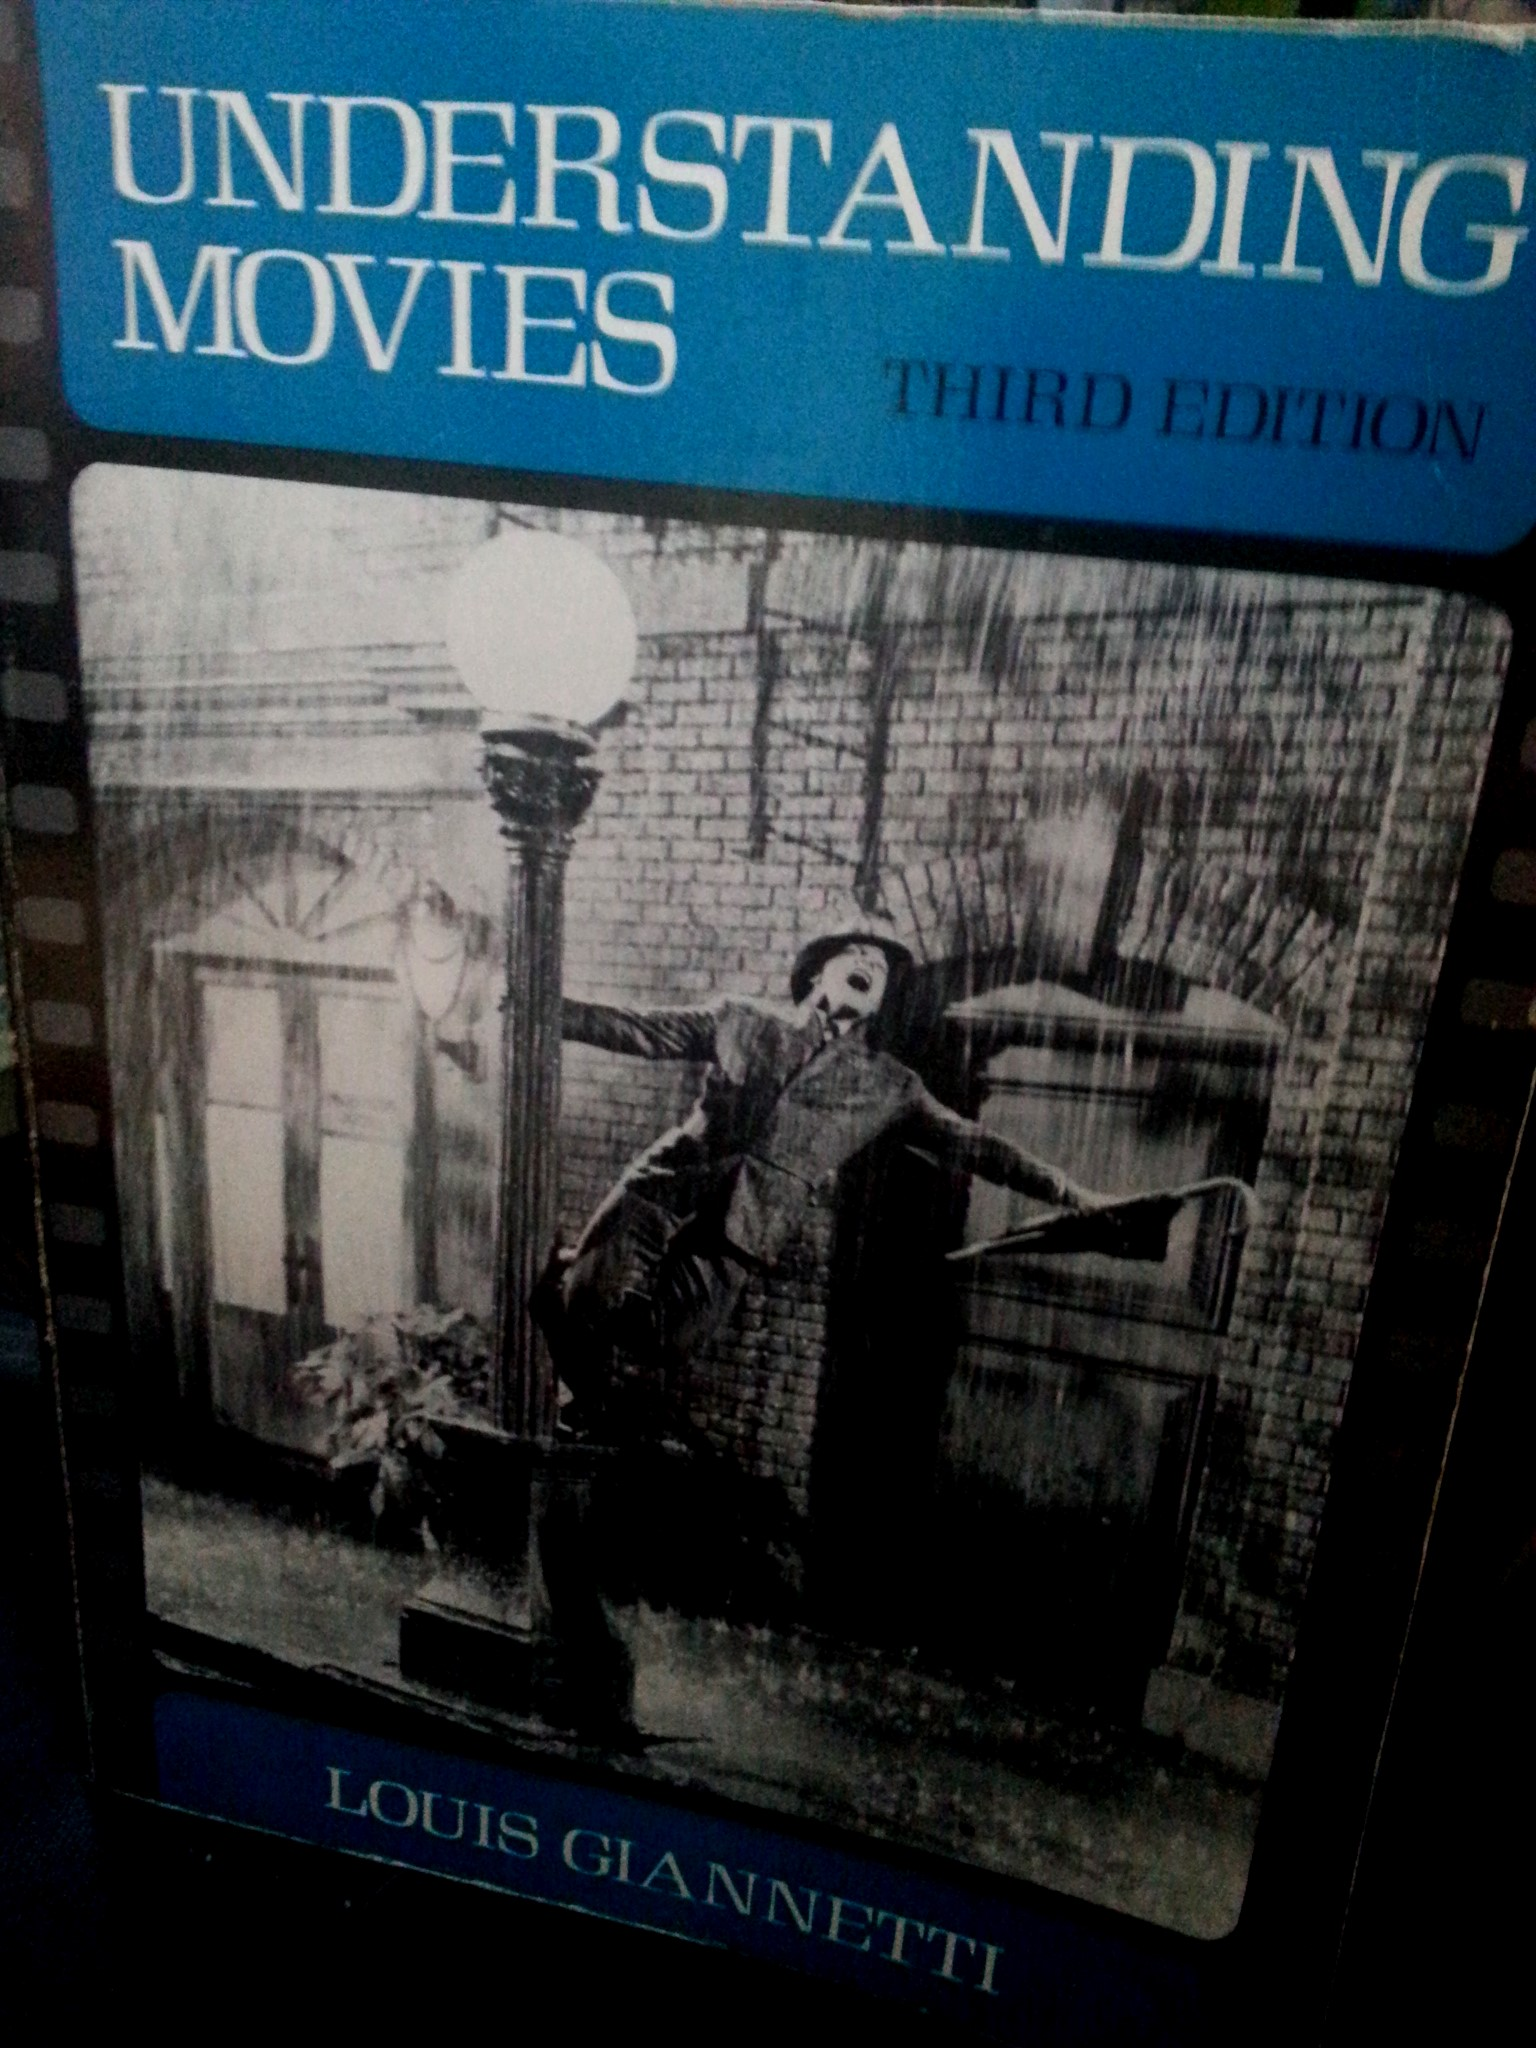 Test bank for understanding movies 12th edition by louis giannetti.